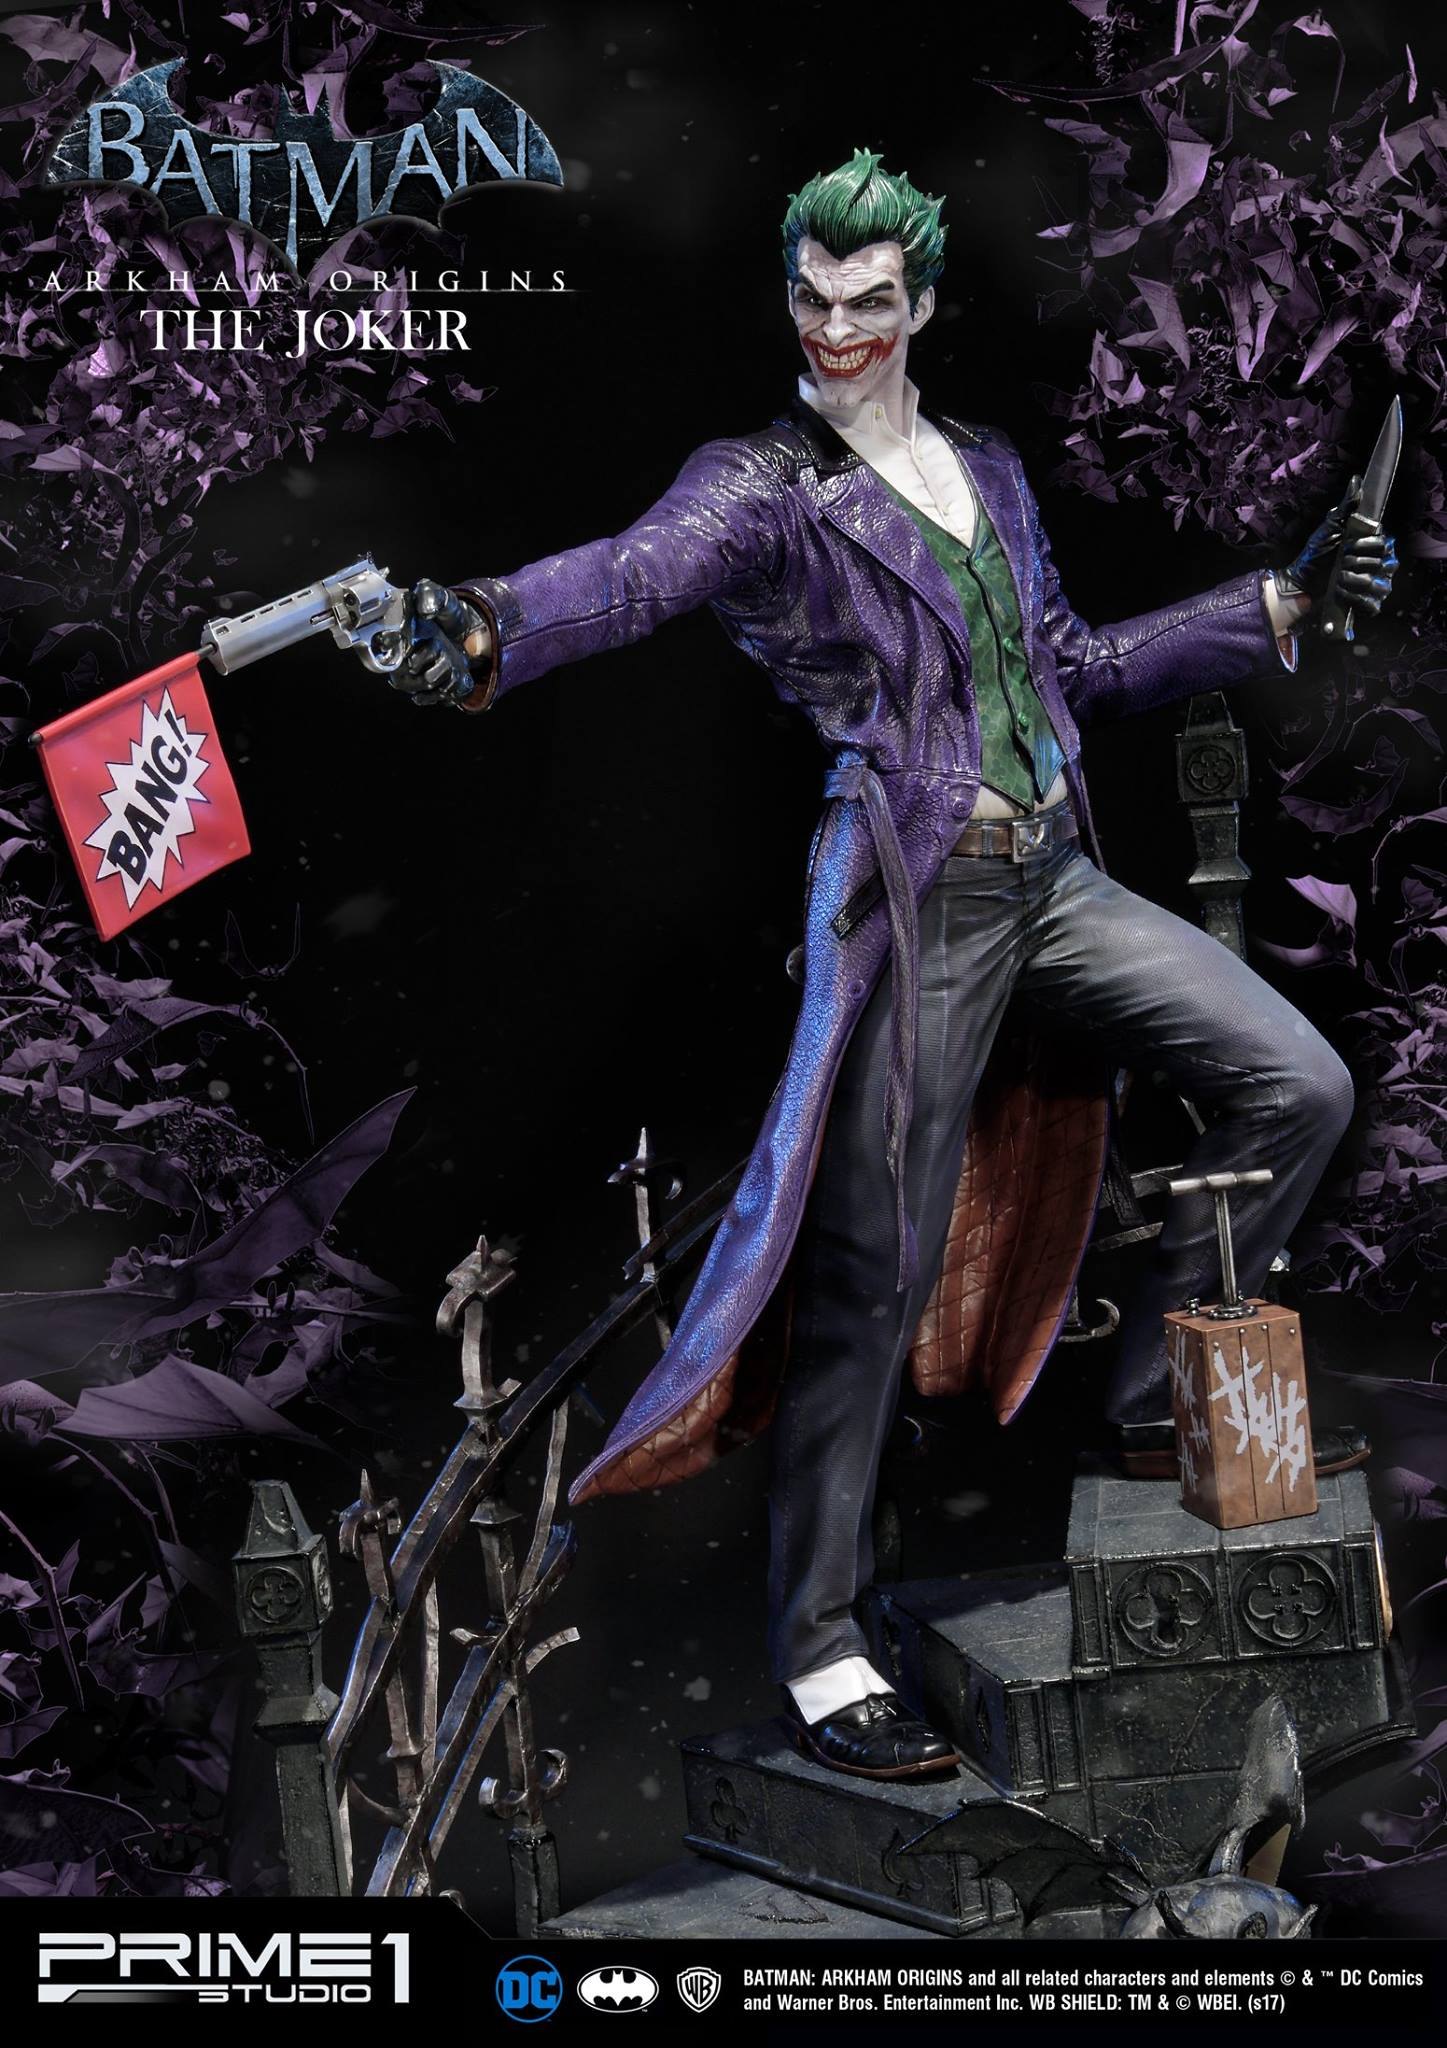 Batman arkham origins the joker statue by prime 1 studio at sideshow and there are only 1000 of these made with just 800 of the exclusive version available so make your move if you want to add this joker voltagebd Image collections